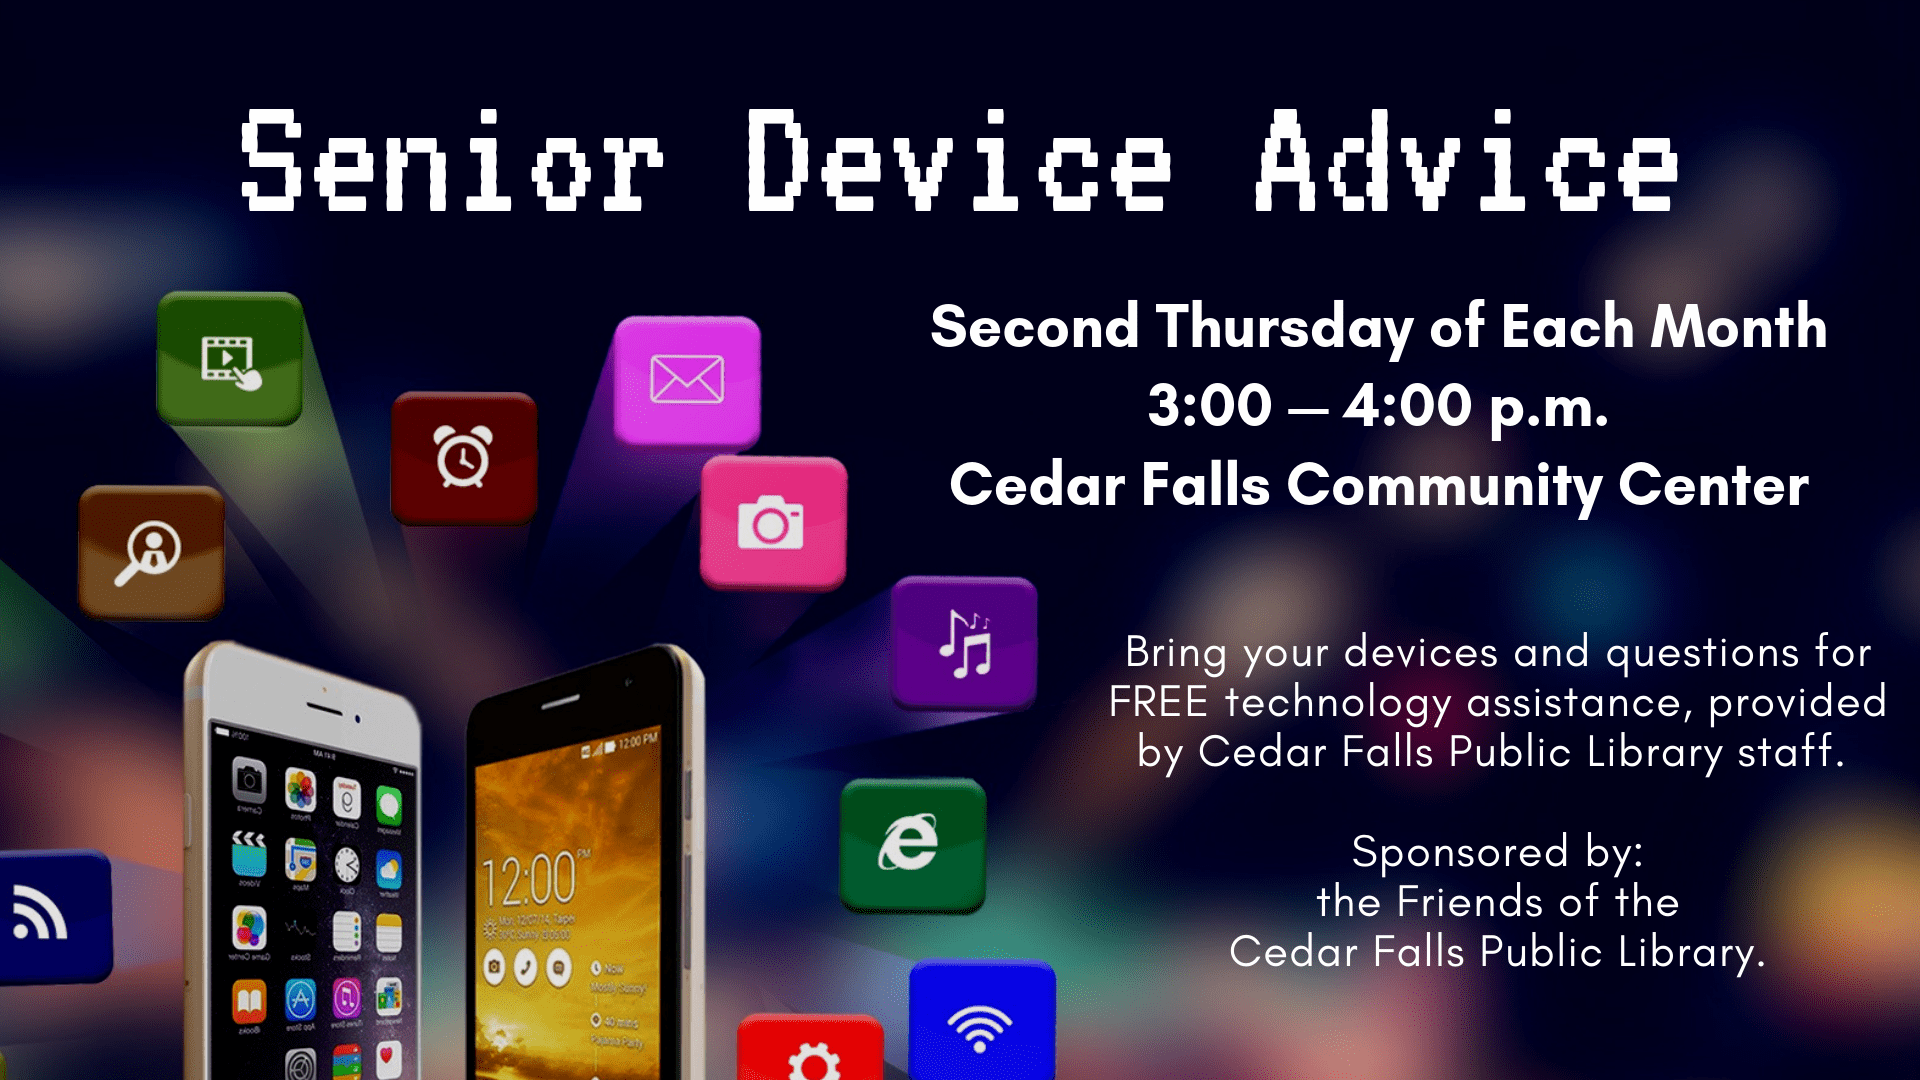 Device Advice Second Thursday Every Month Graphic